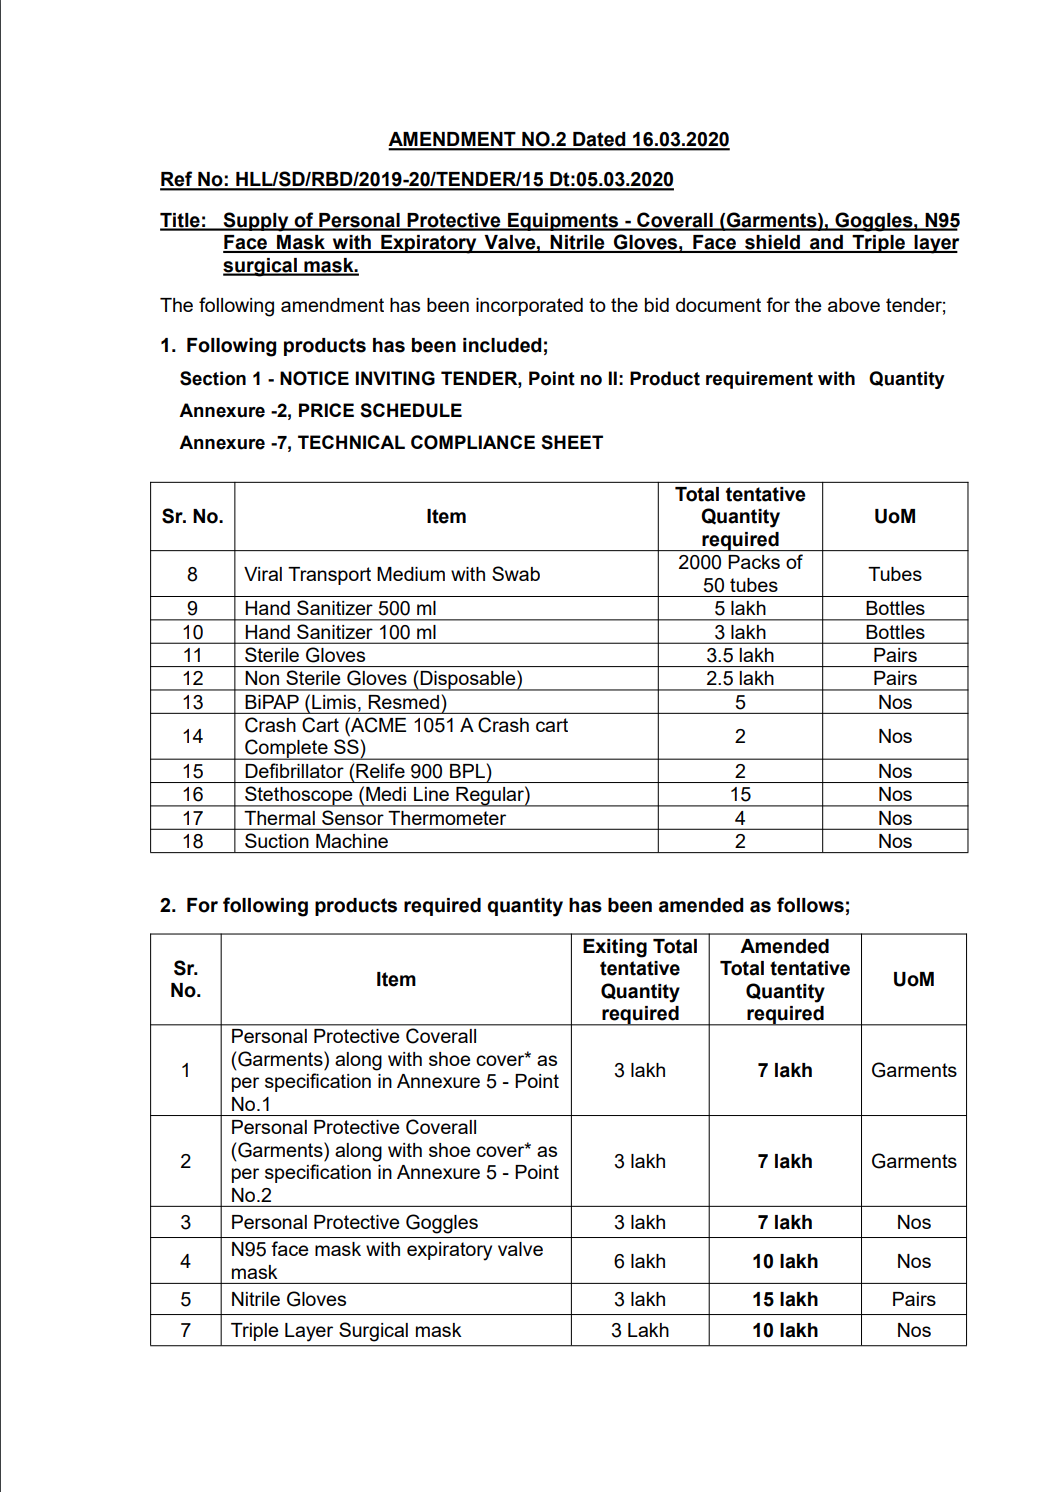 The amended tender document dated March 16.